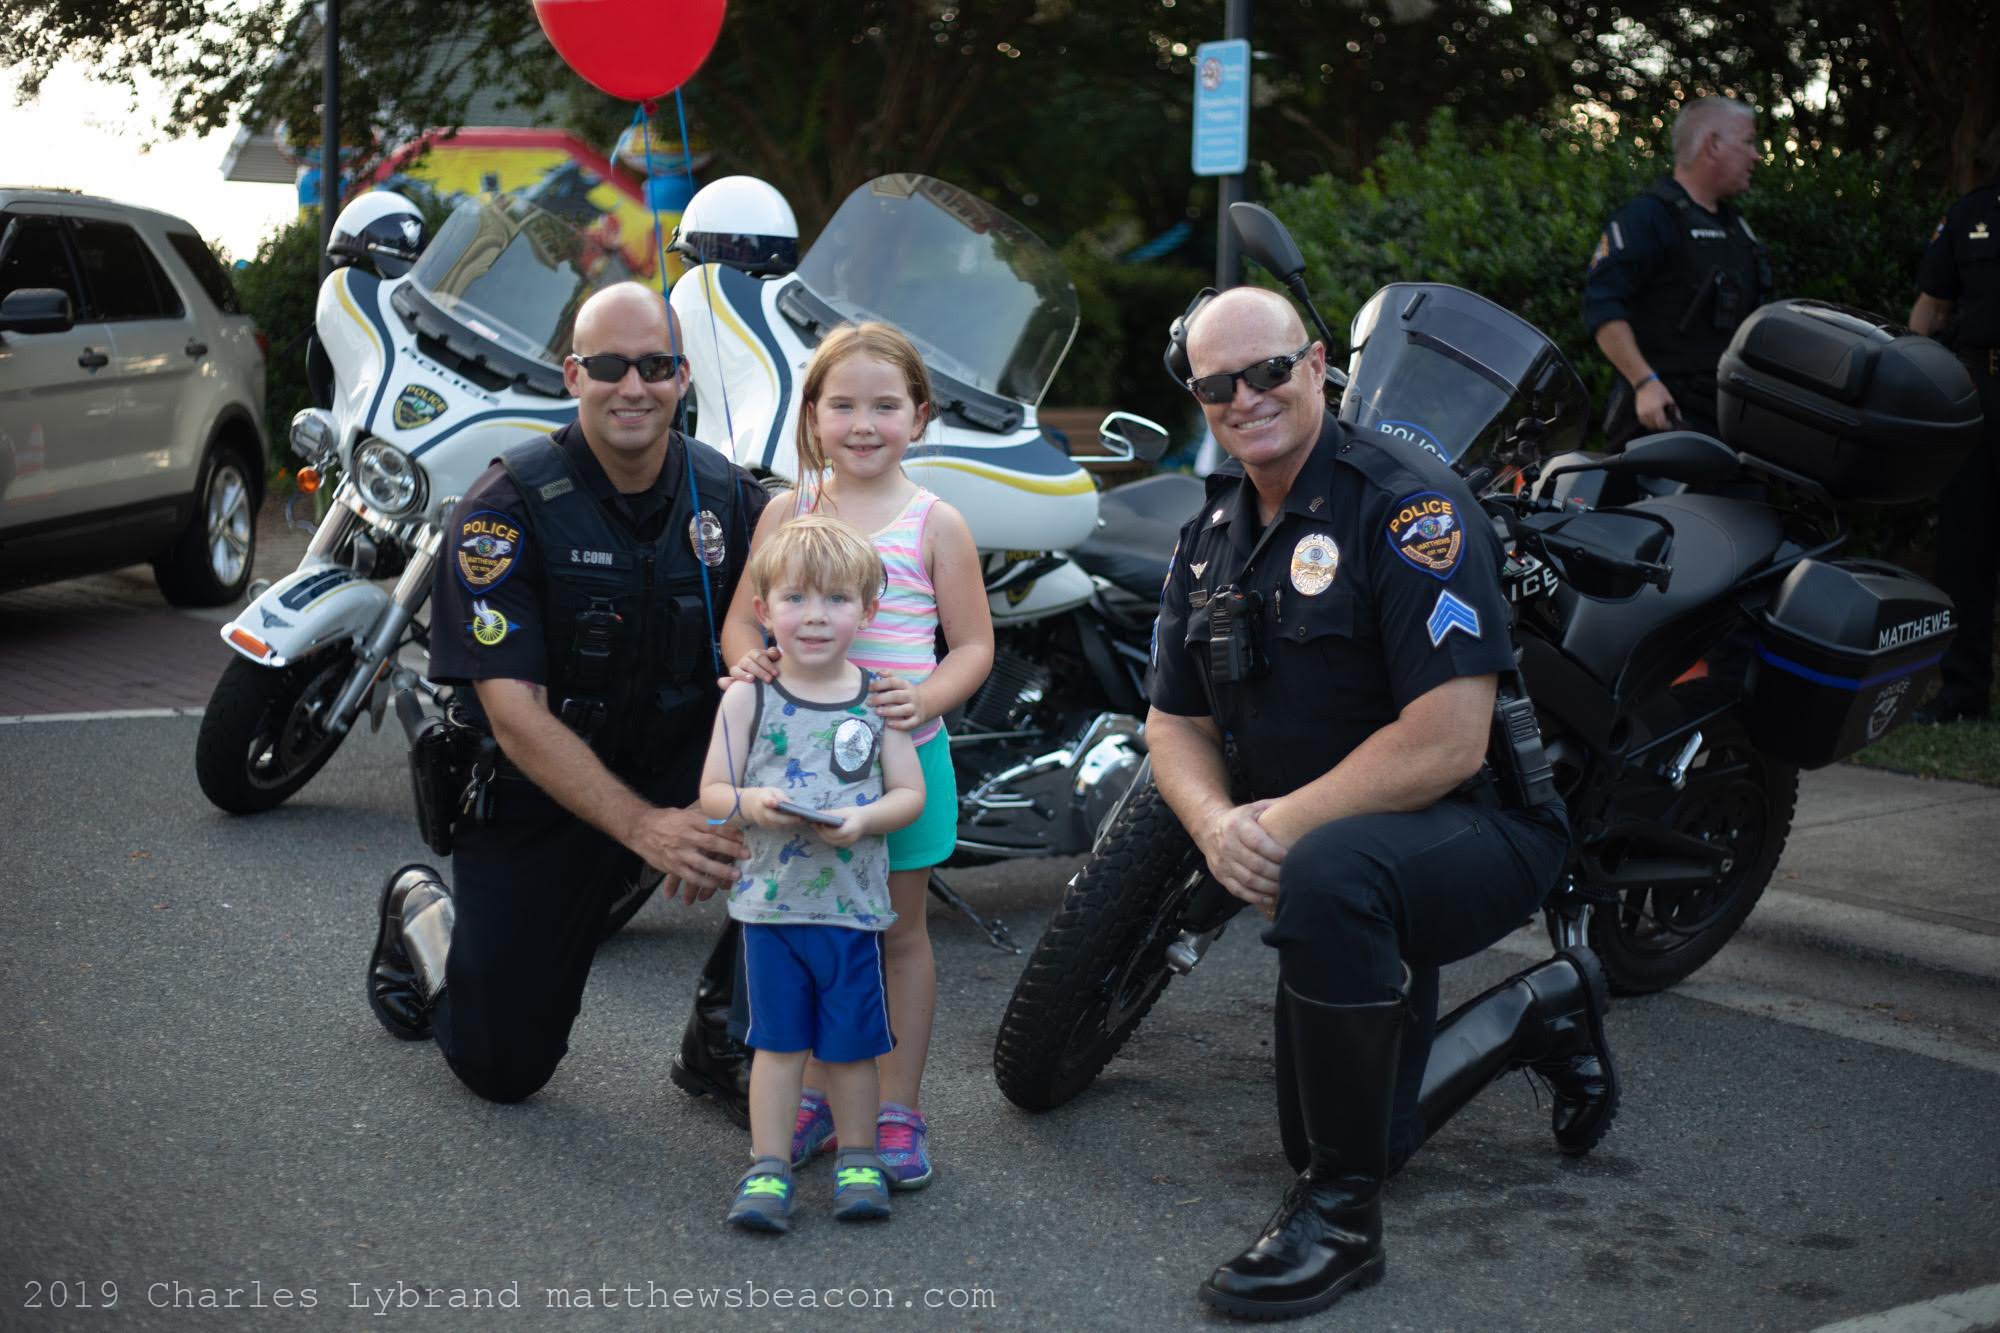 beacon national night out motorcade.jpg